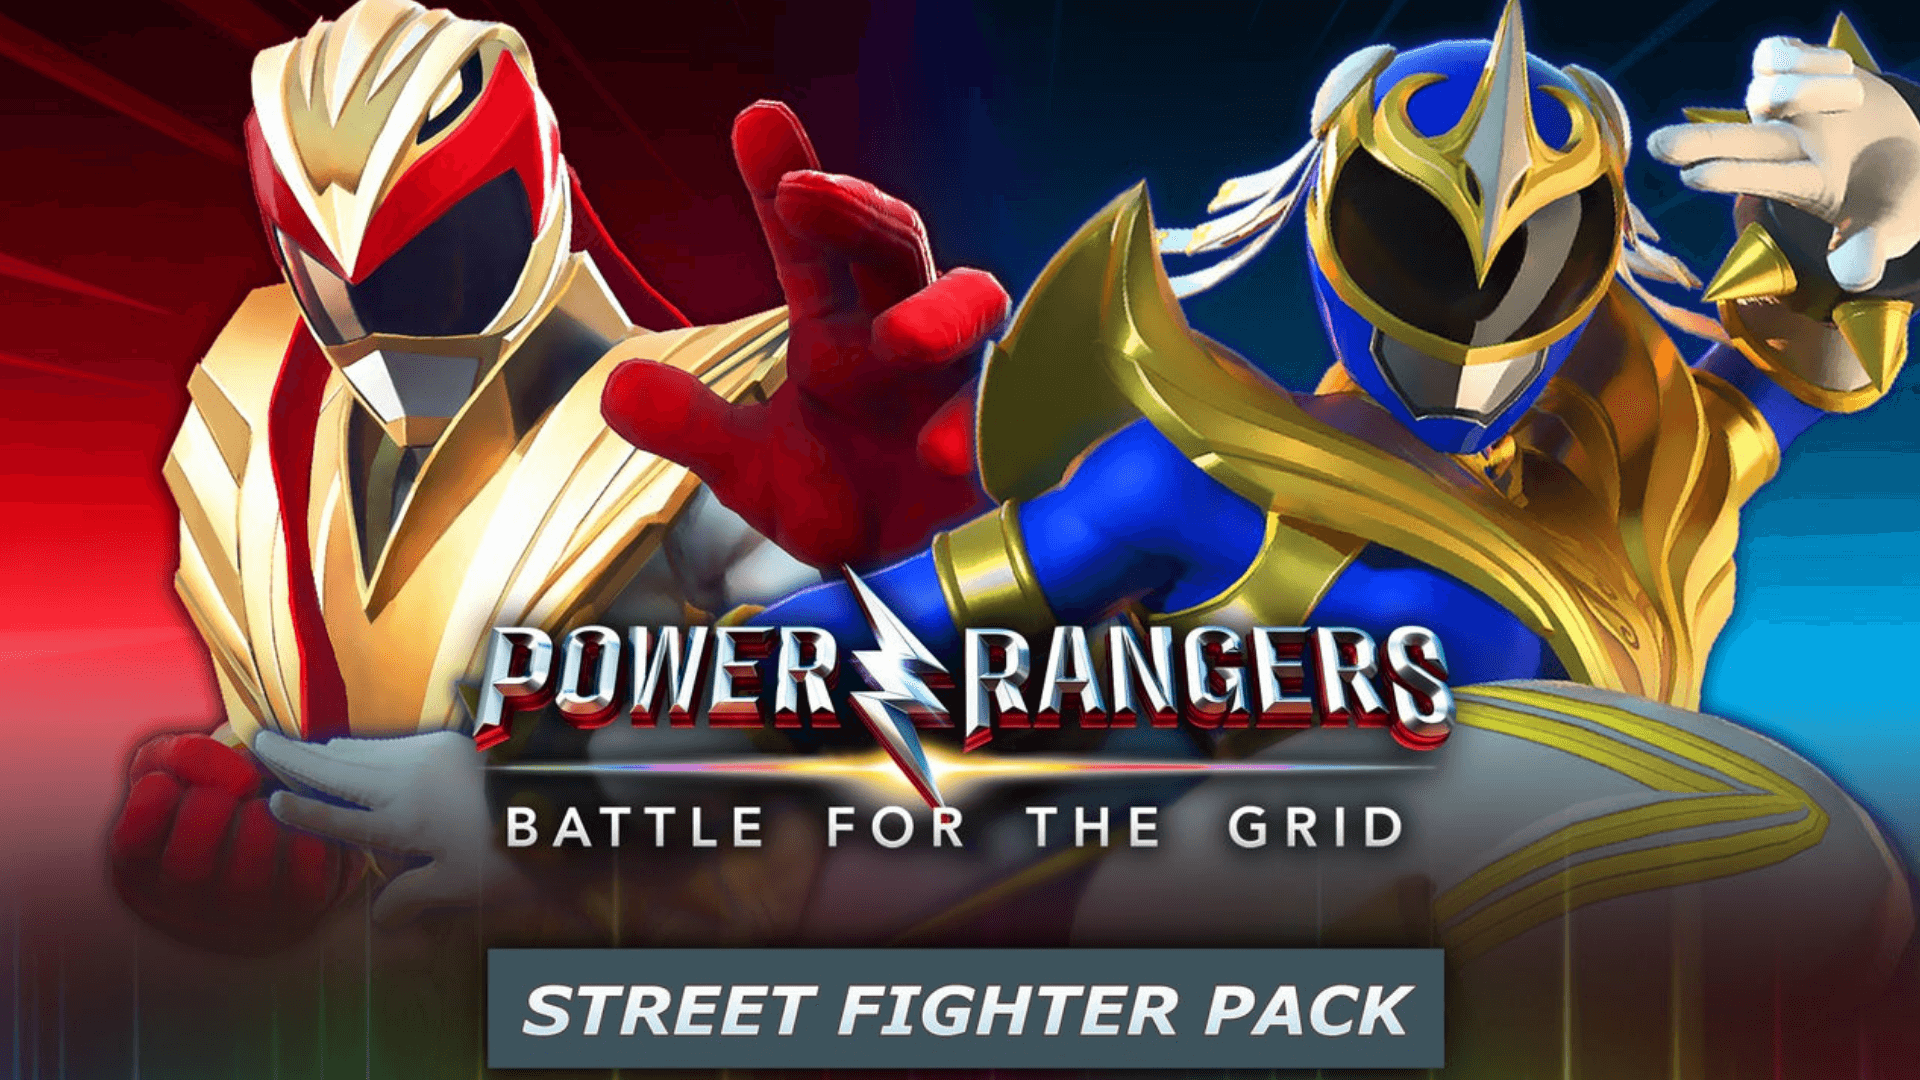 Ryu and Chun-li Join the Grid In New Power Rangers Update